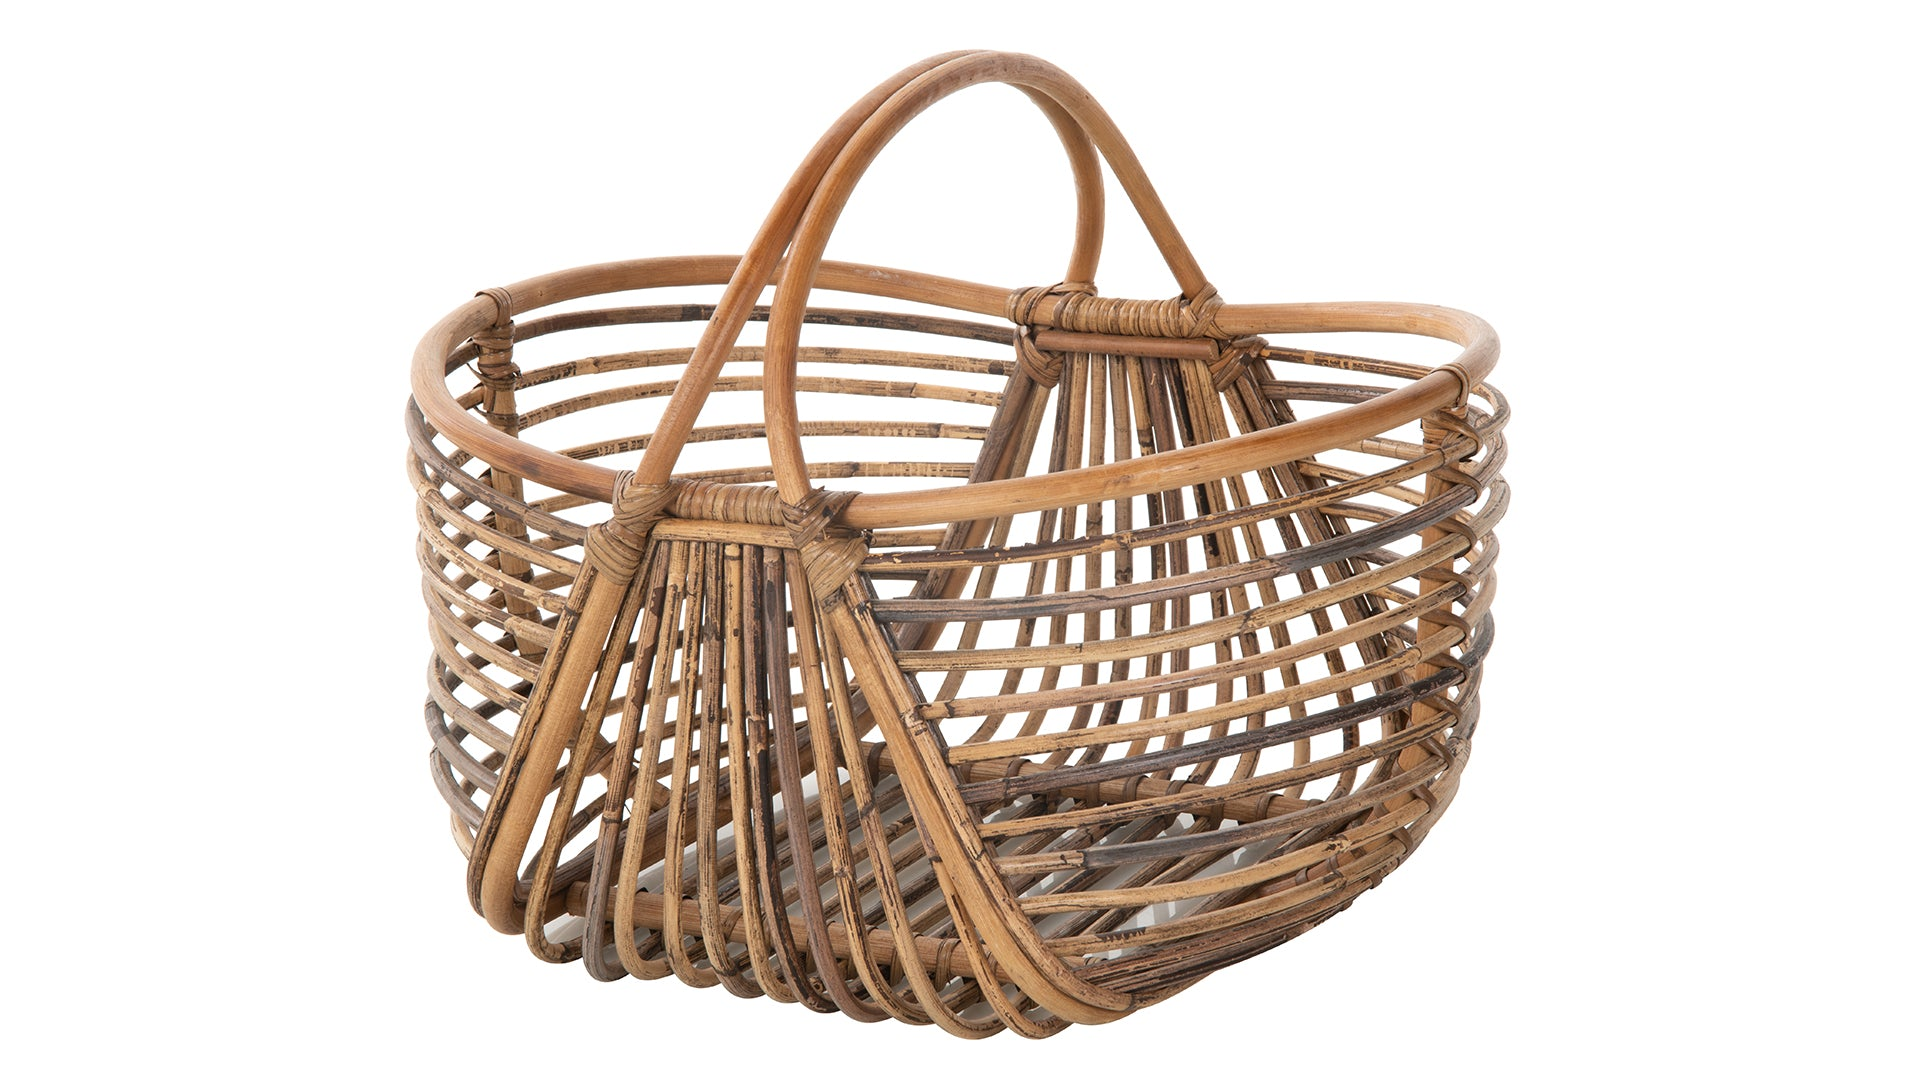 Oval Rattan Open Weave Picnic And Storage Basket Natural Brown